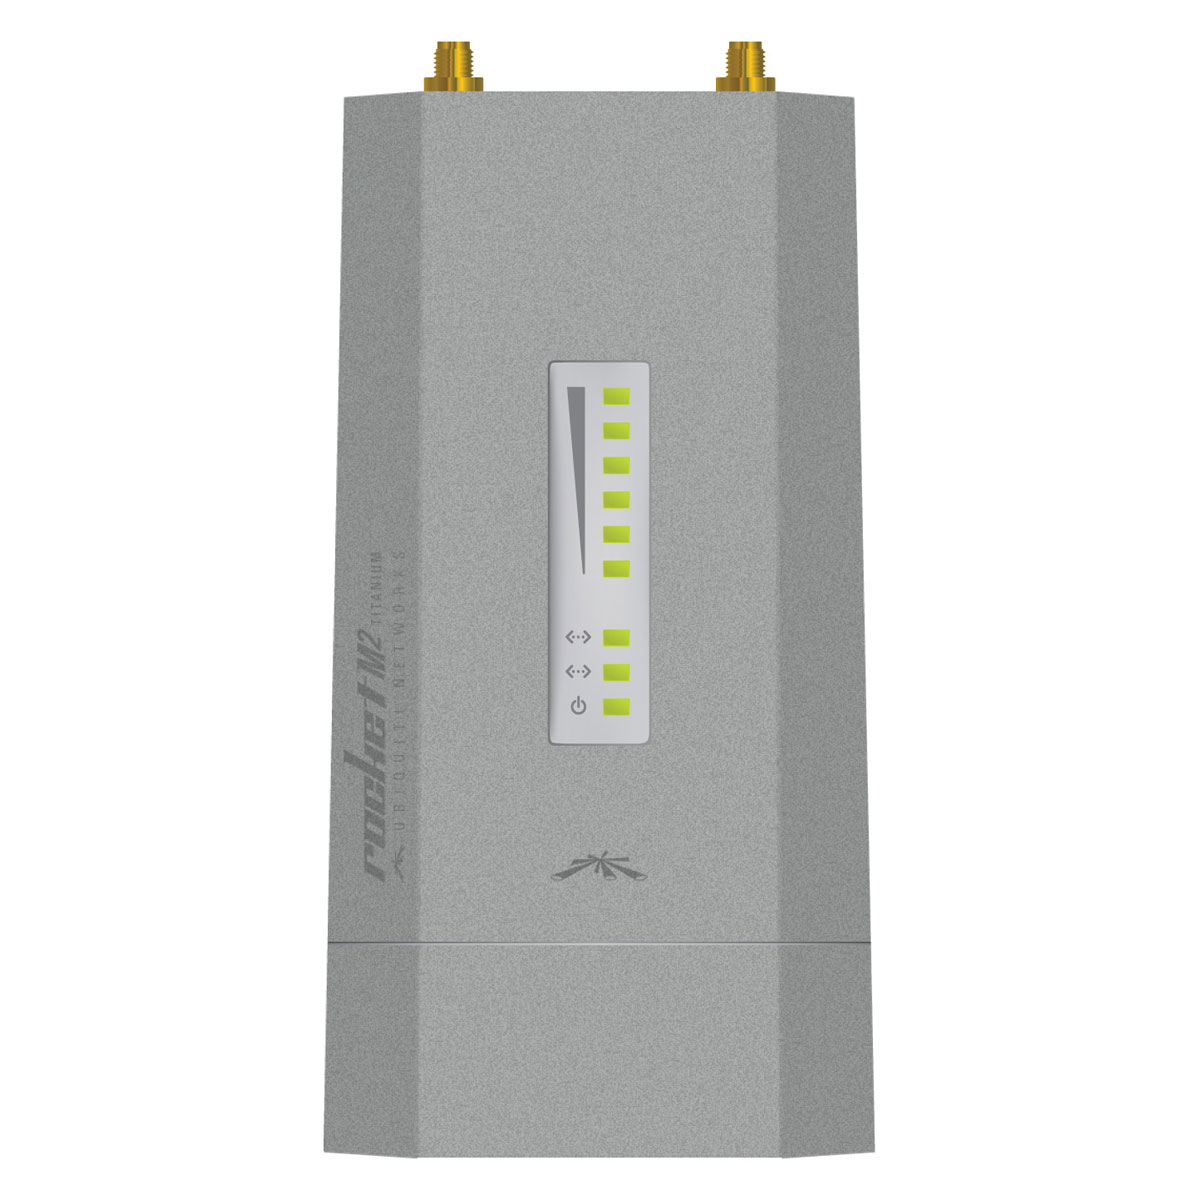 Ubiquiti rocket m2 titanium point d 39 acc s wifi ubiquiti for Point acces wifi exterieur